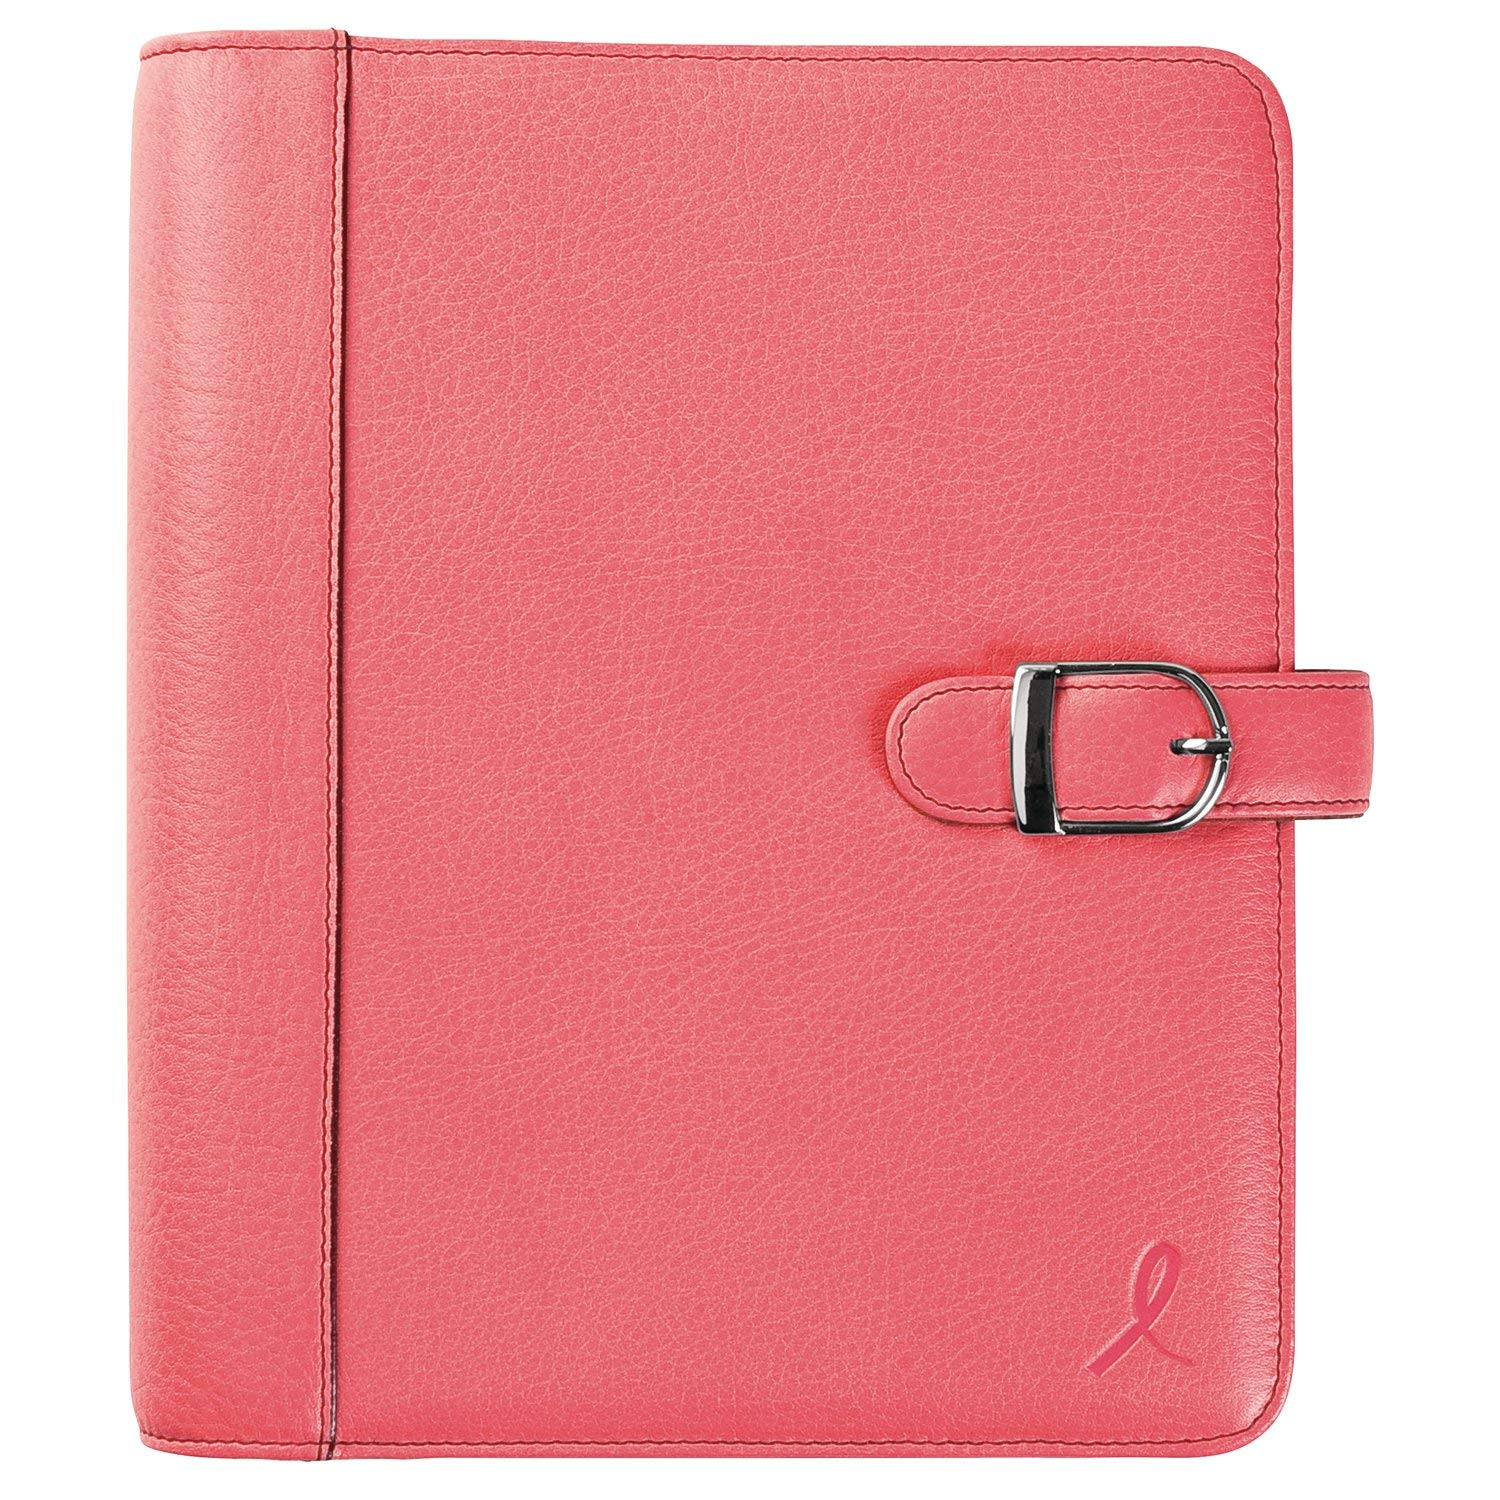 Day-Timer Loose-Leaf Organizer Set, 5-1/2'' x 8-1/2'', Leather Cover, Breast Cancer Awareness Pink Ribbon (48434)